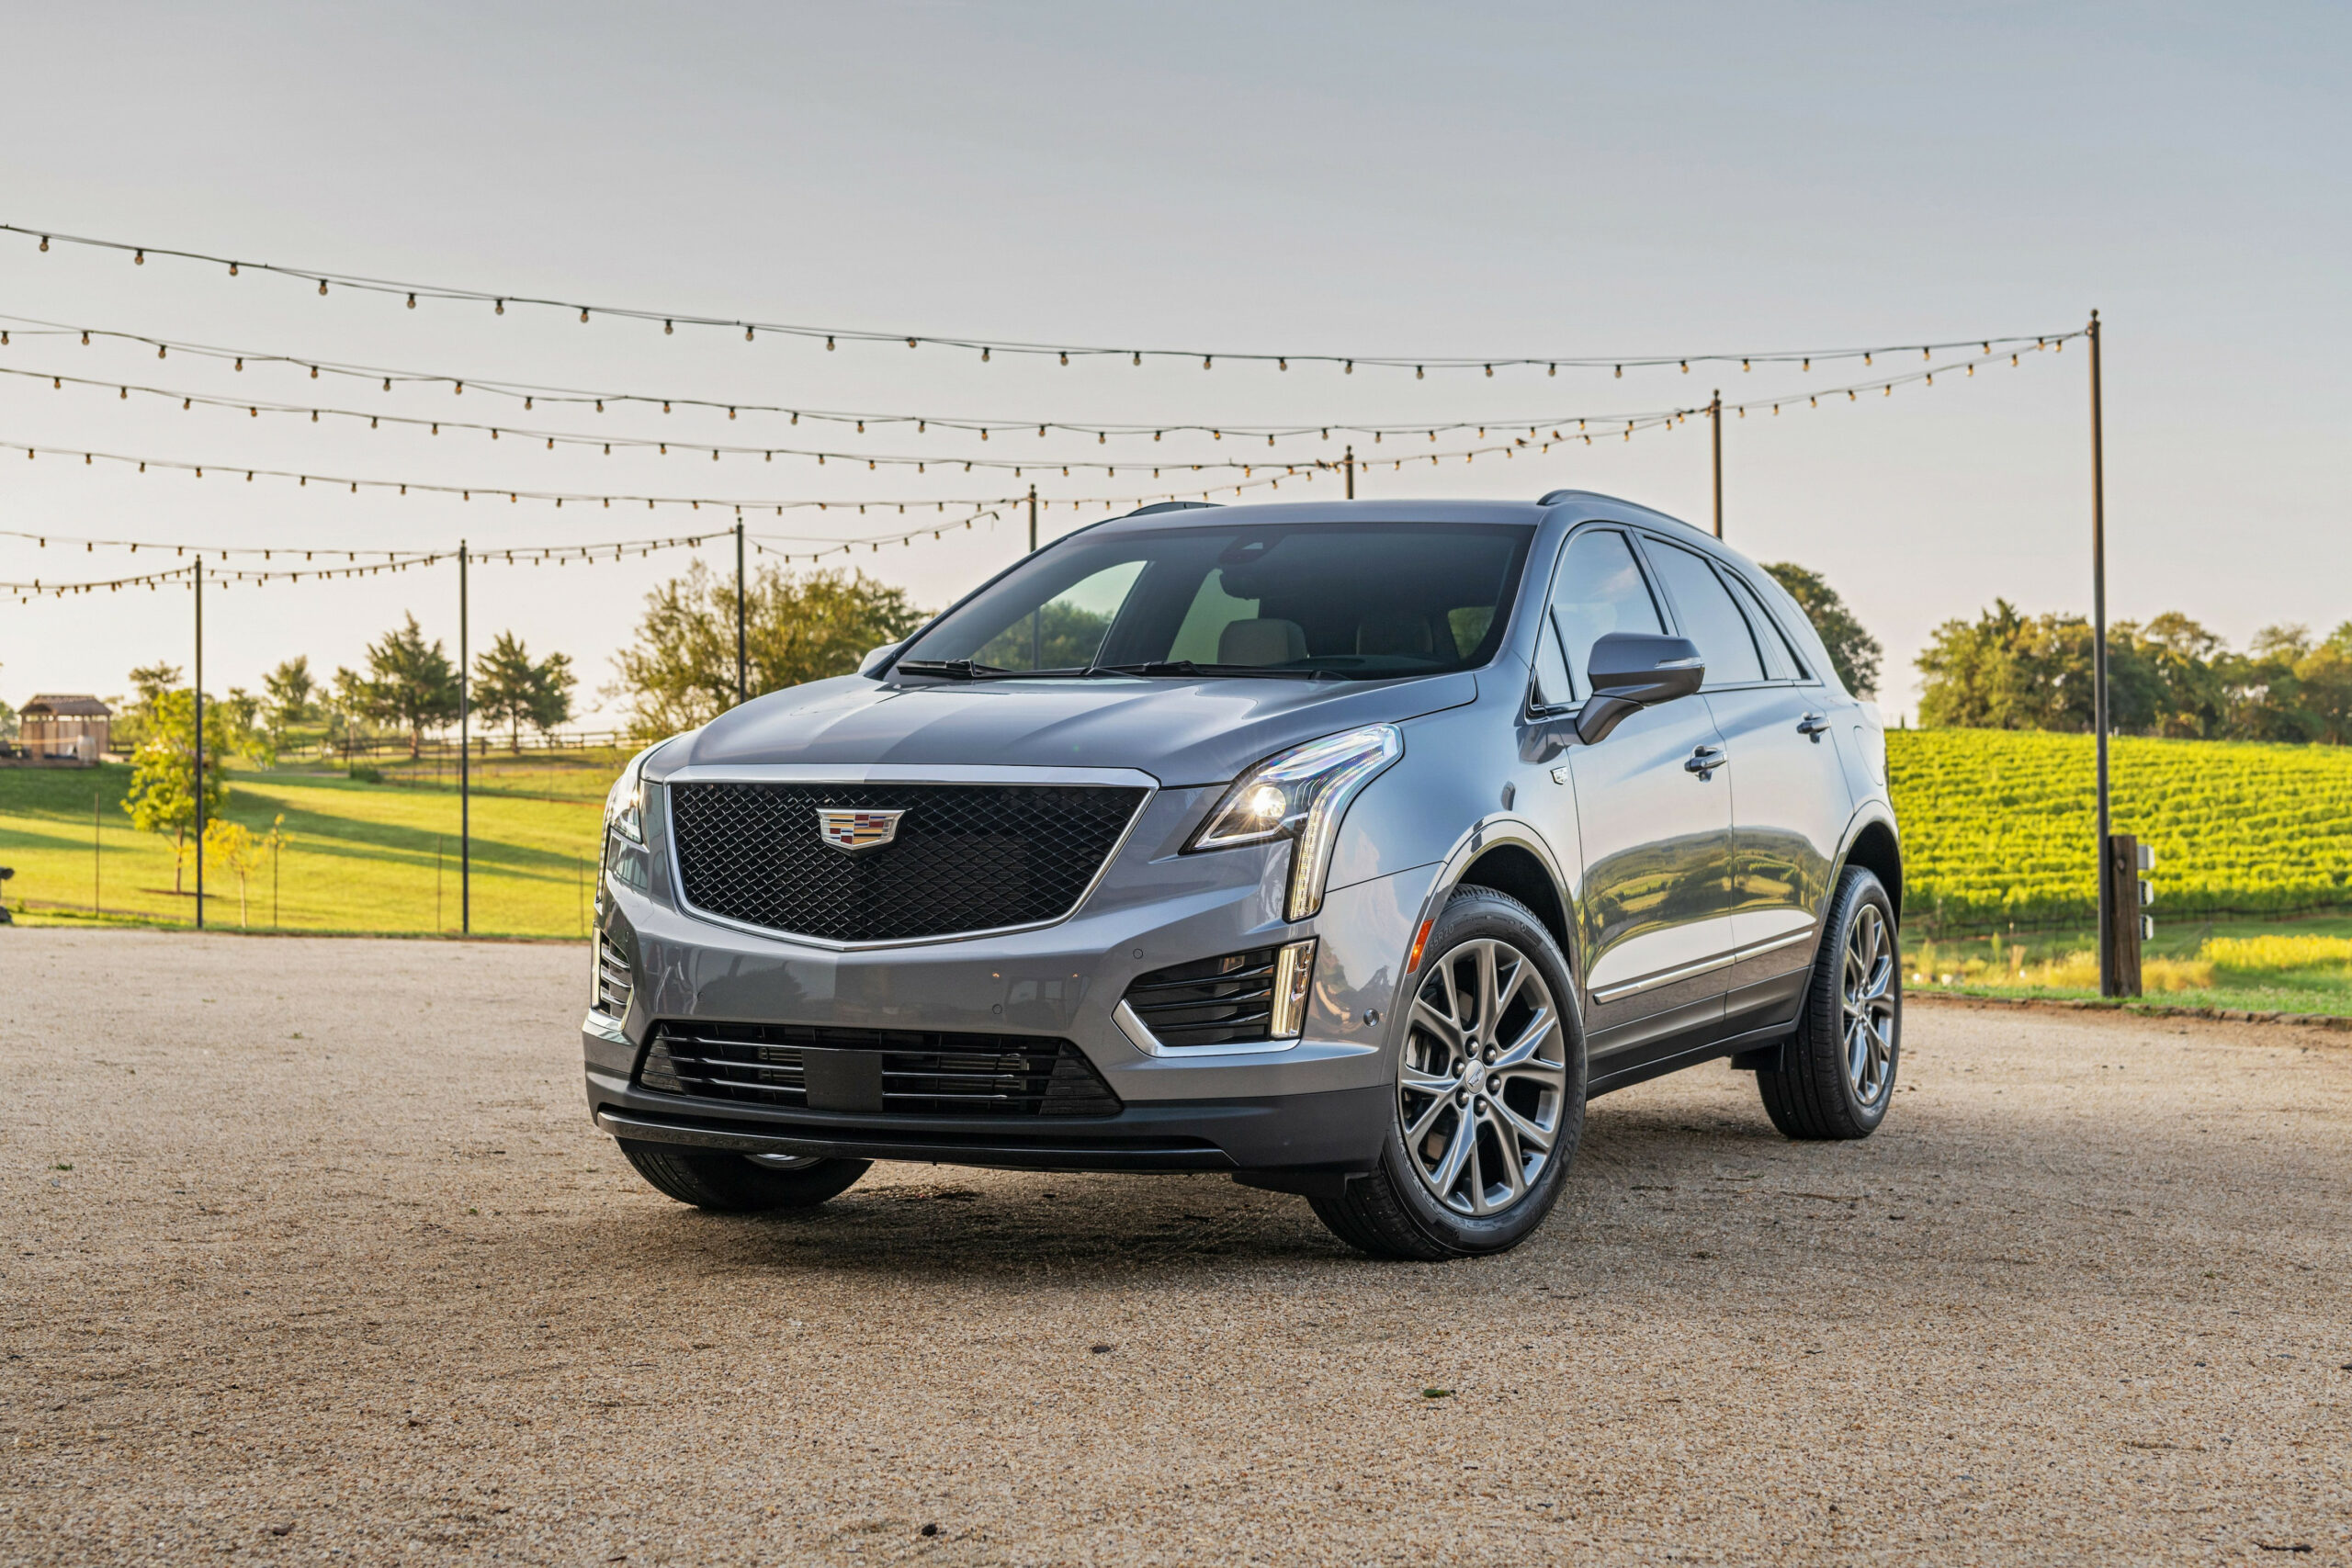 7 Cadillac XT7 Review, Pricing, and Specs